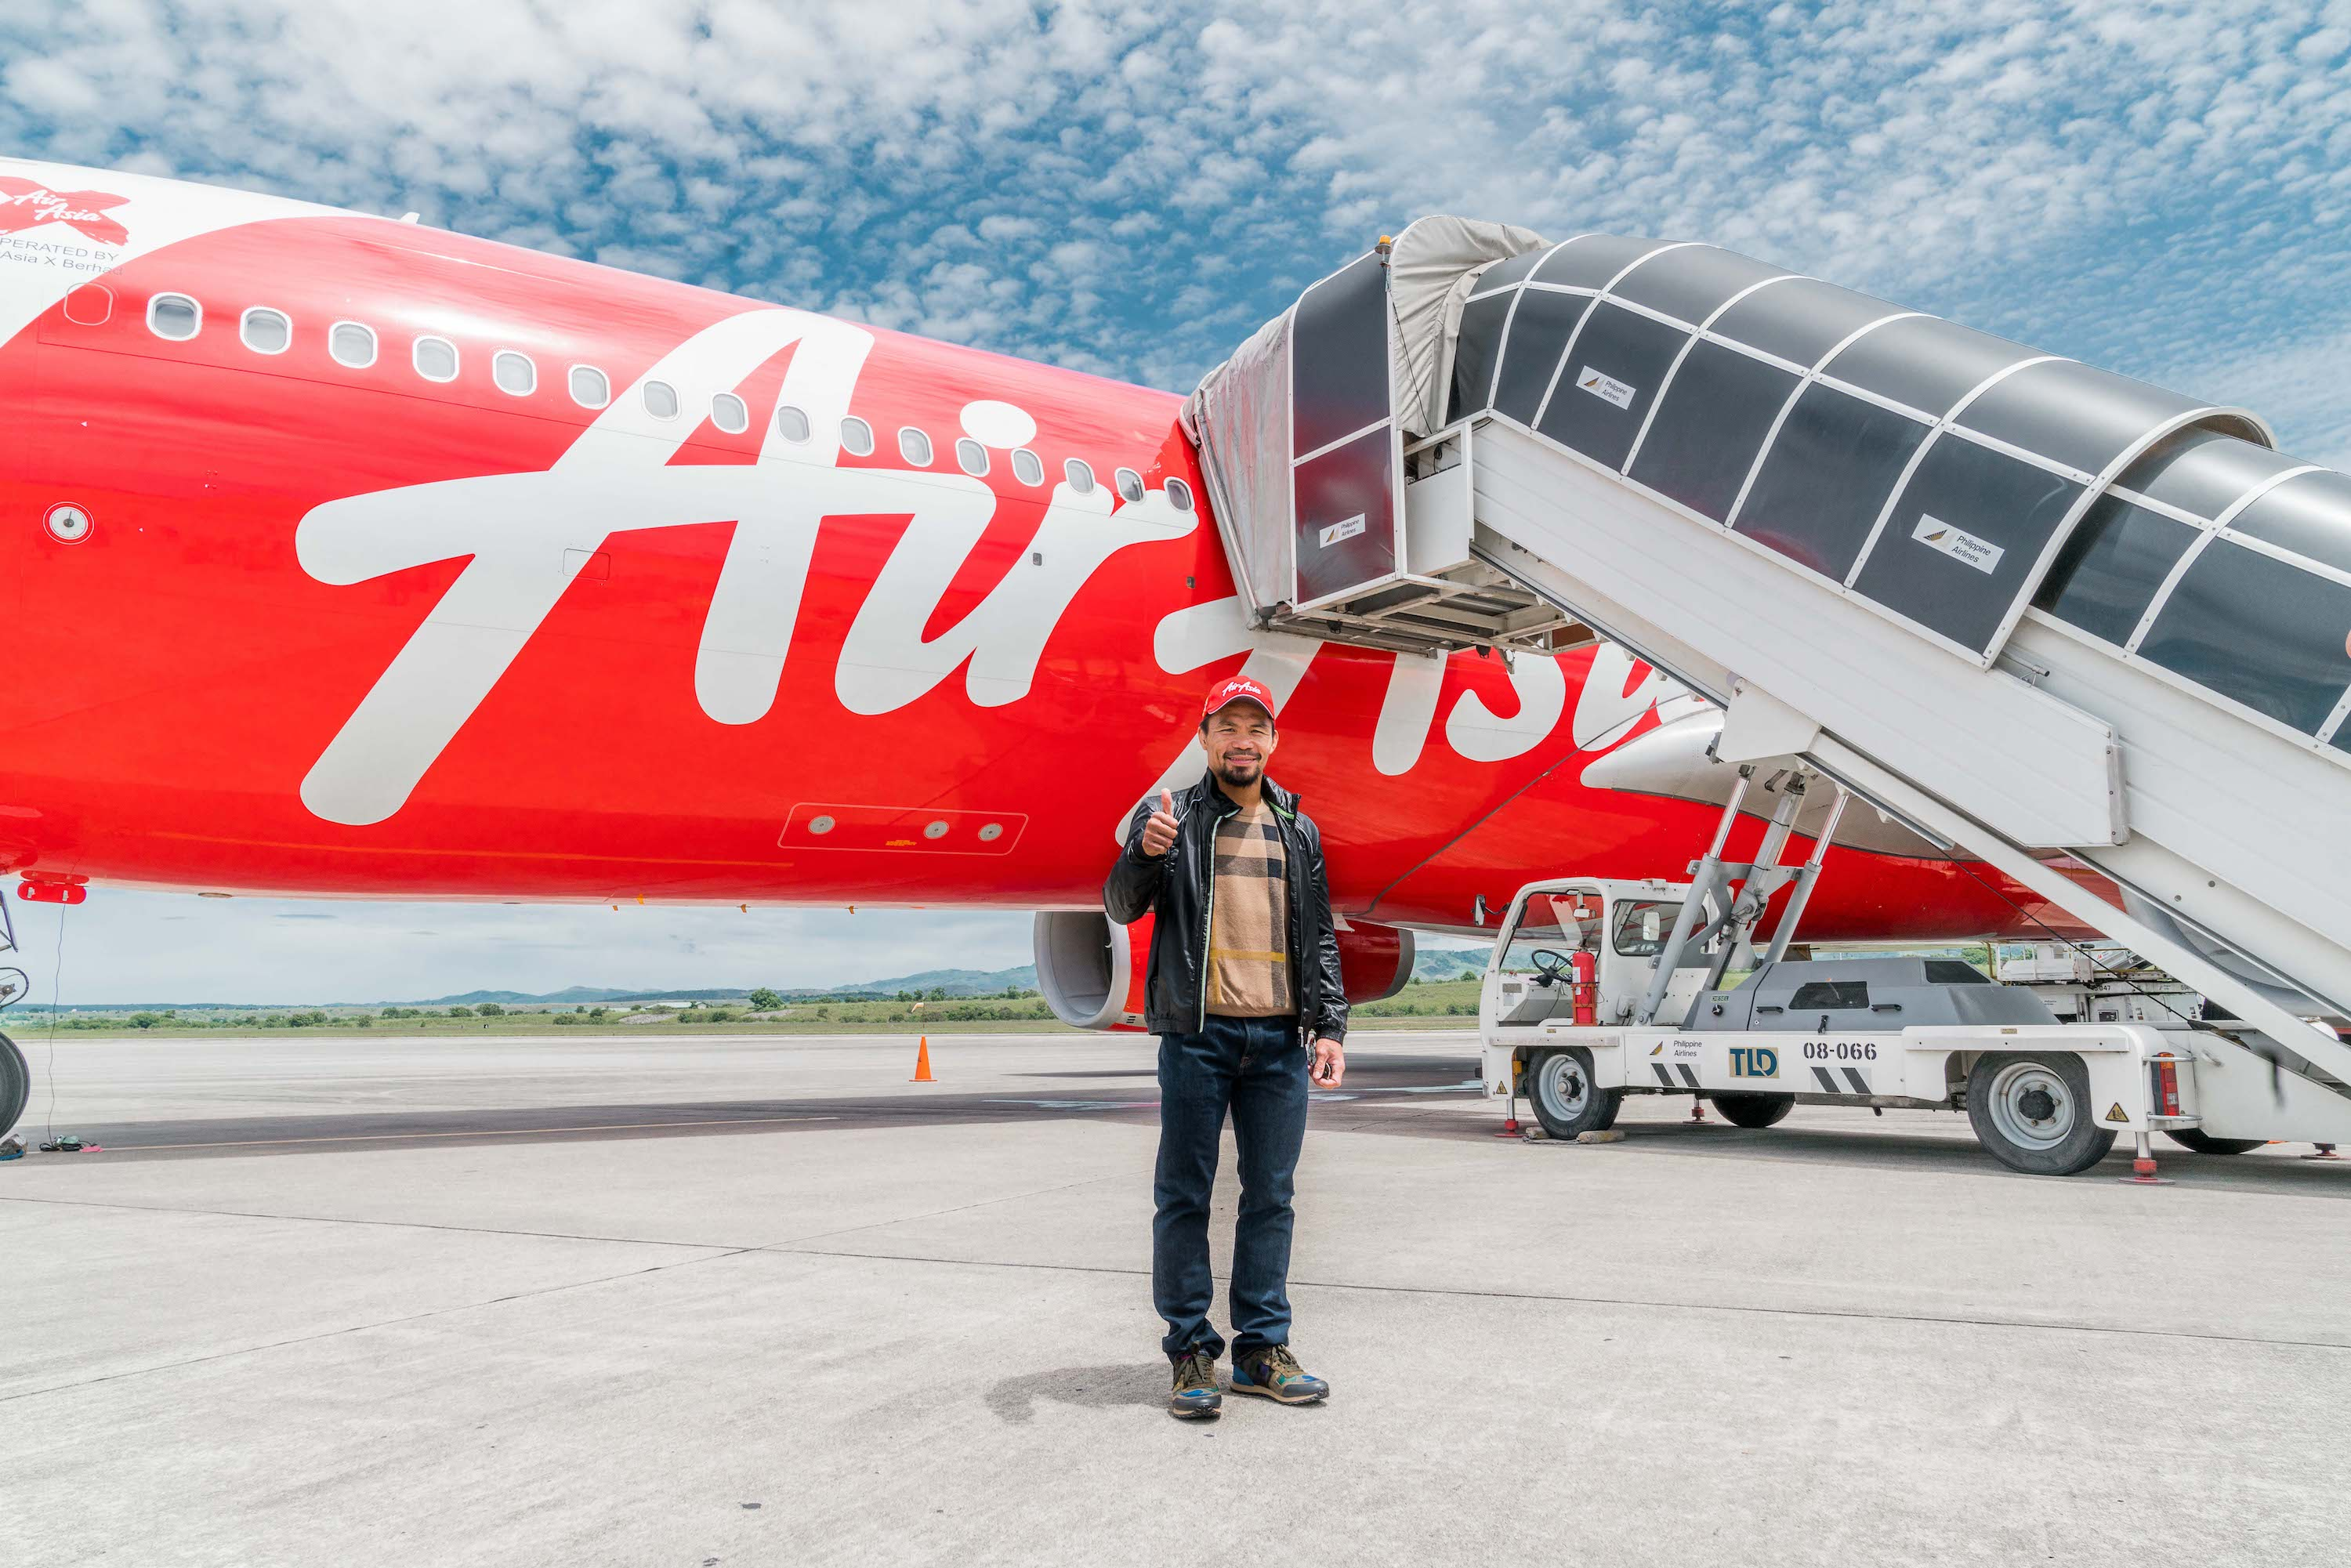 All your questions about the AirAsia move from Terminal 1 to Terminal 4 answered here - Alvinology